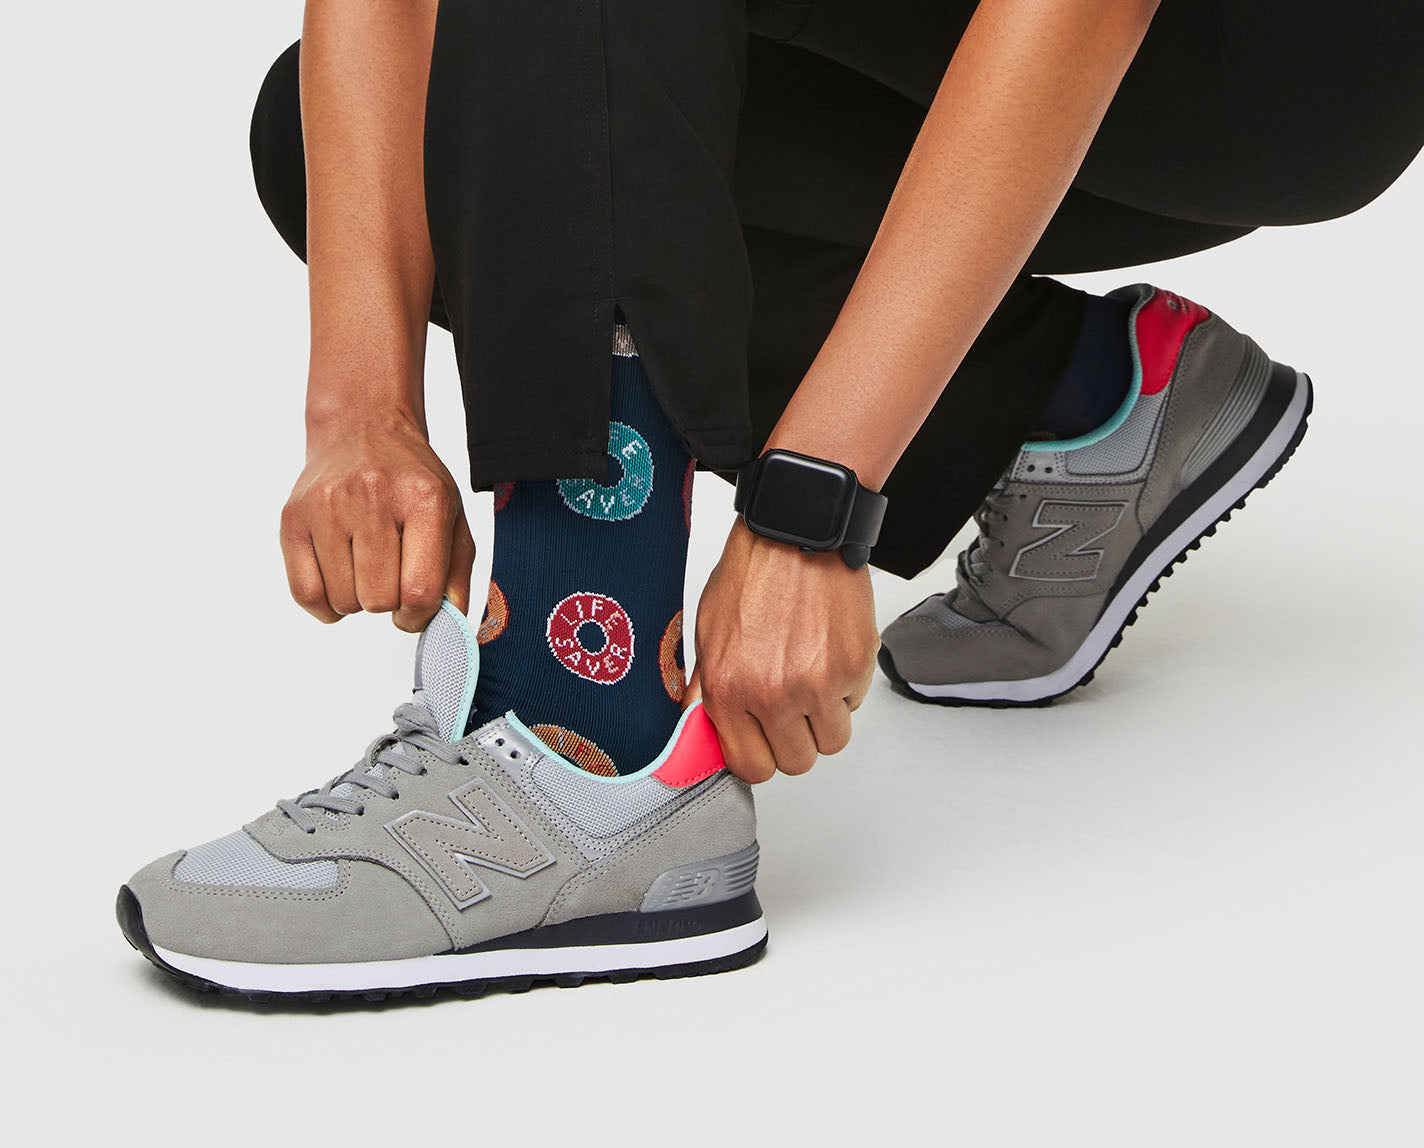 You're a lifesaver. Our 100% Awesome Compression Socks help relieve tired and achy legs. They're also breathable and ridiculously soft.